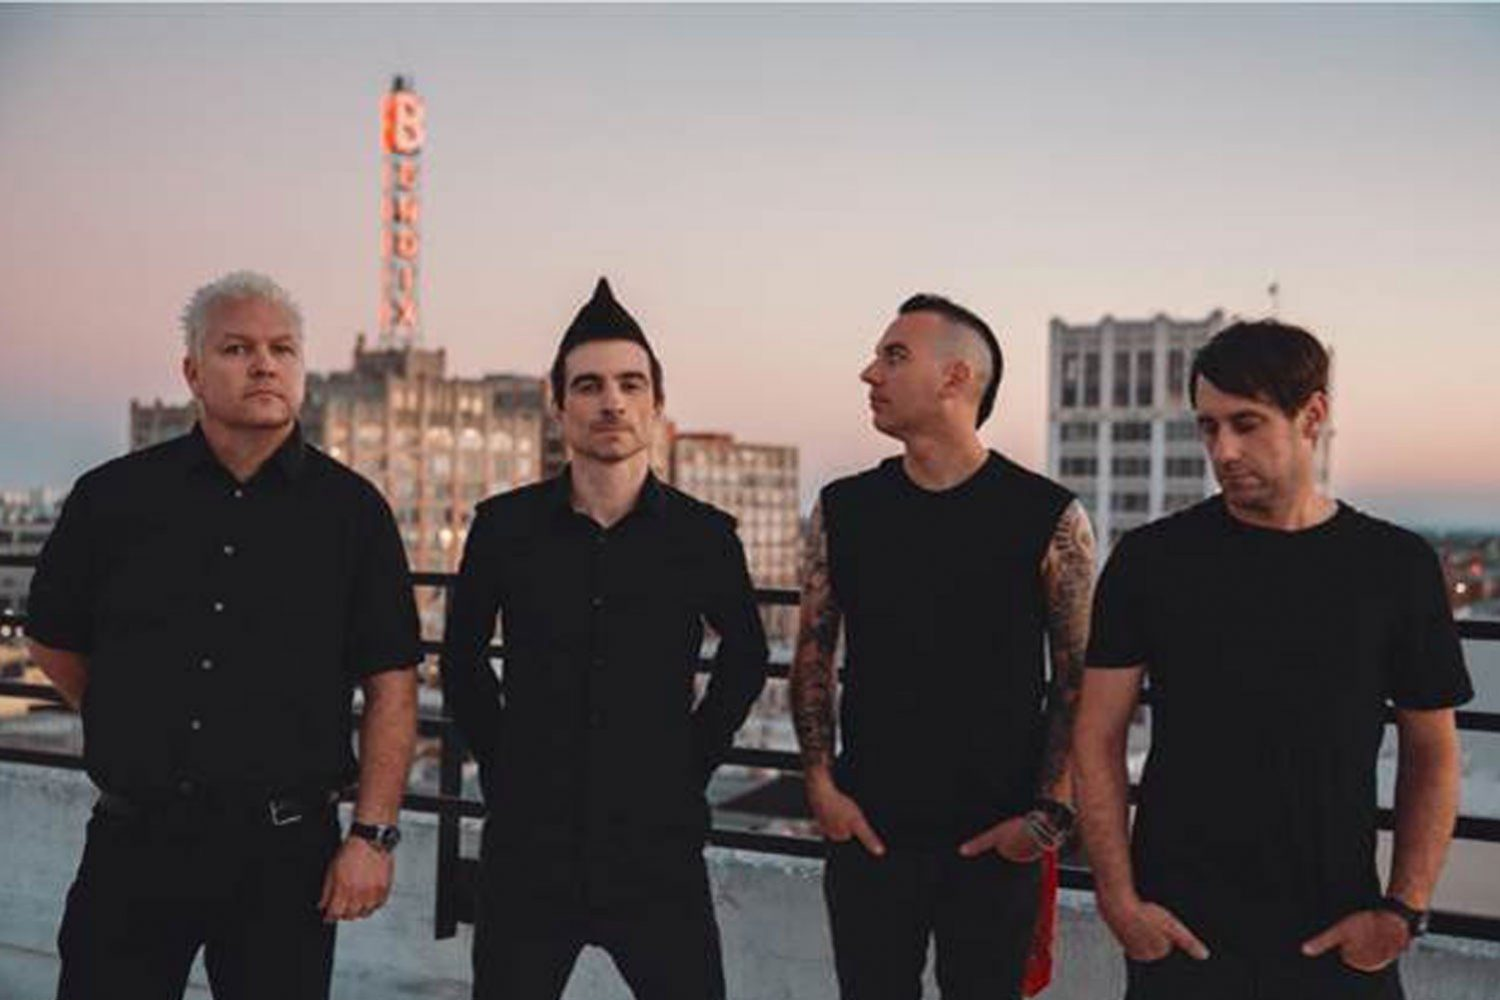 Anti-Flag have unveiled a European tour ahead of a new album due in 2020